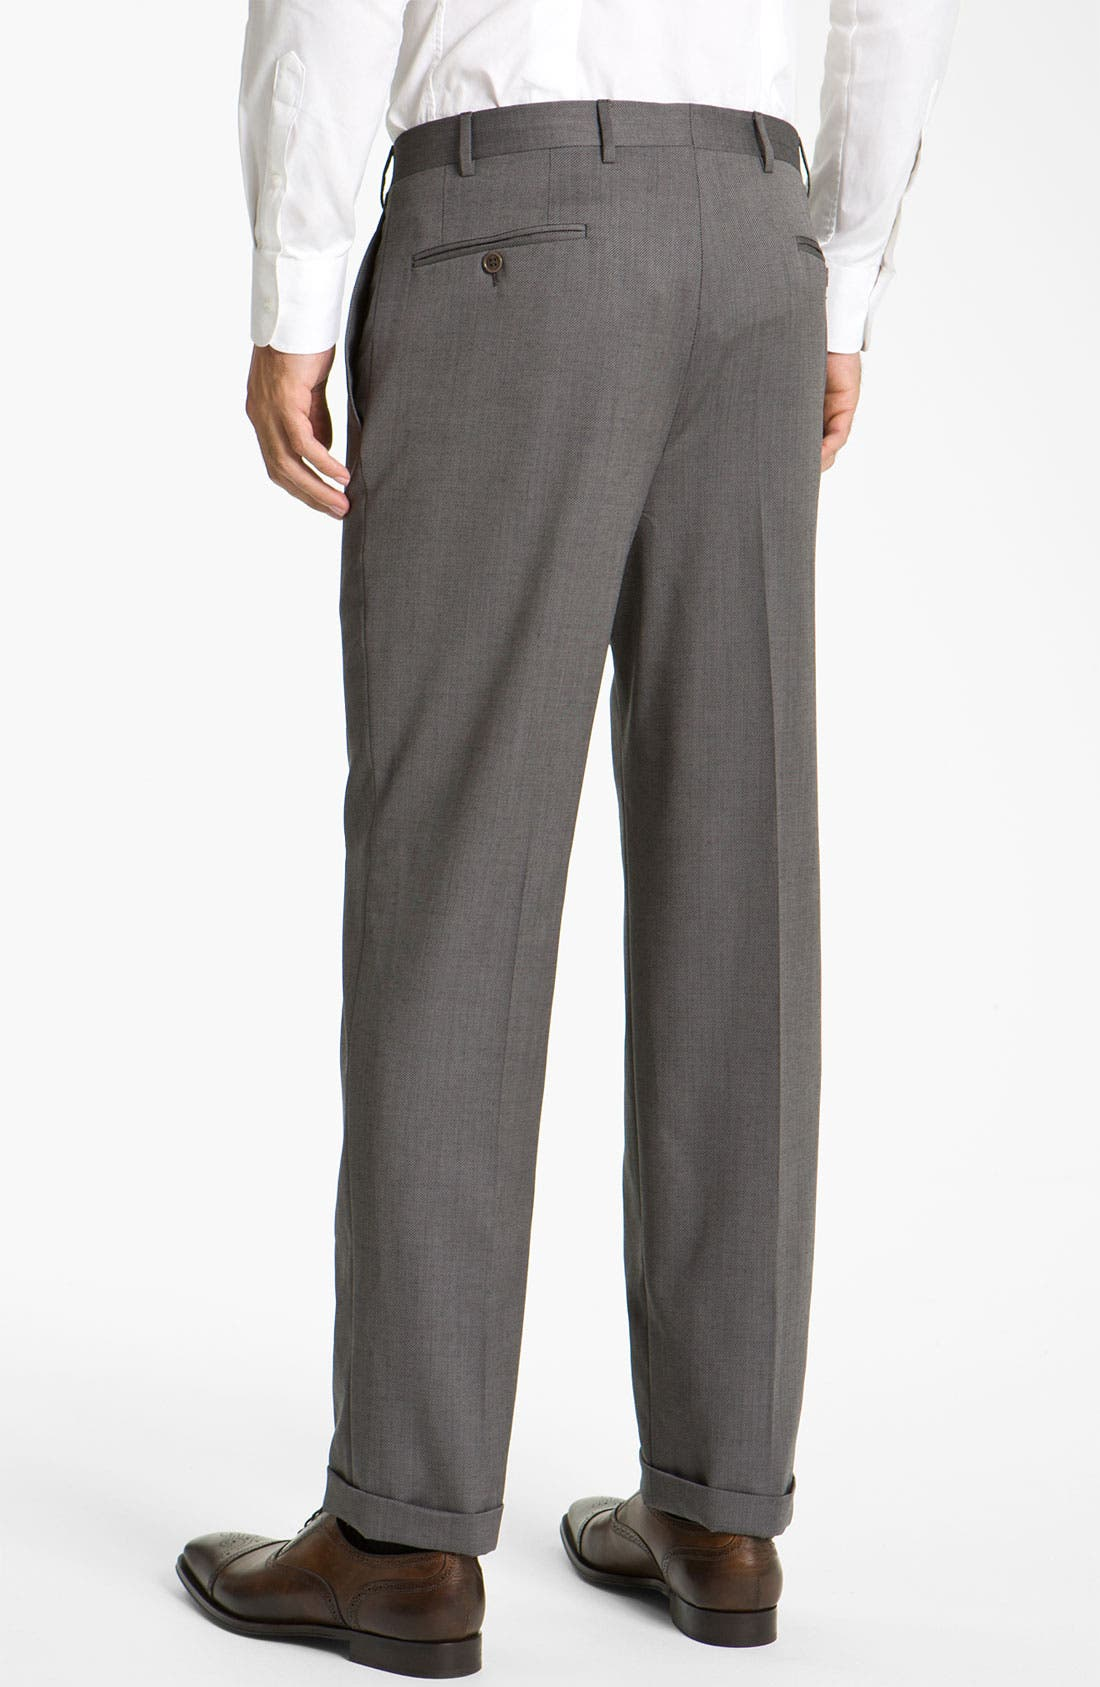 CANALI, Flat Front Wool Trousers, Alternate thumbnail 2, color, GREY